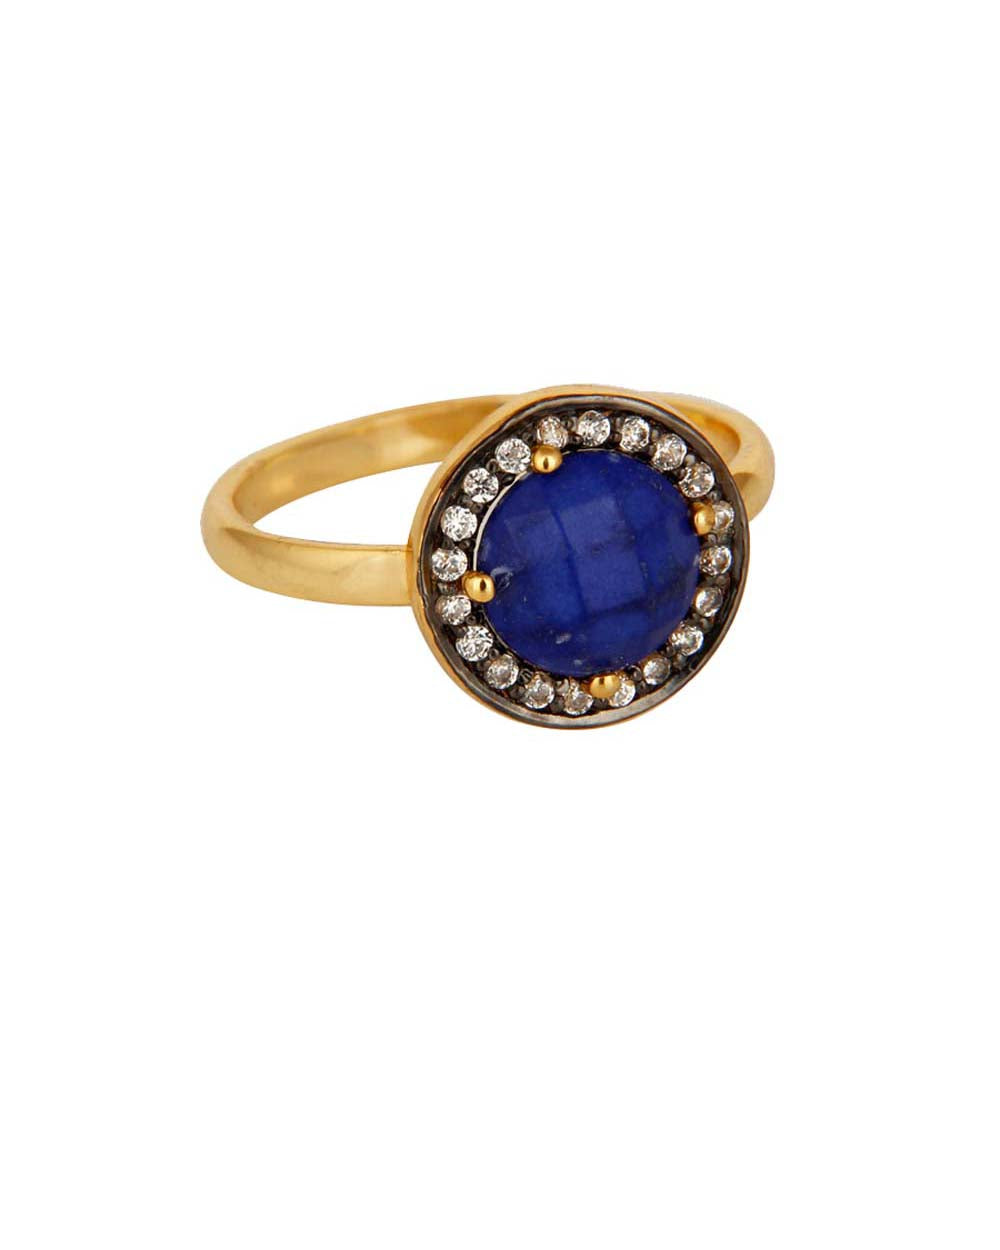 Halo Lapis Lazuli and White Topaz Pave Ring in Gold Vermeil